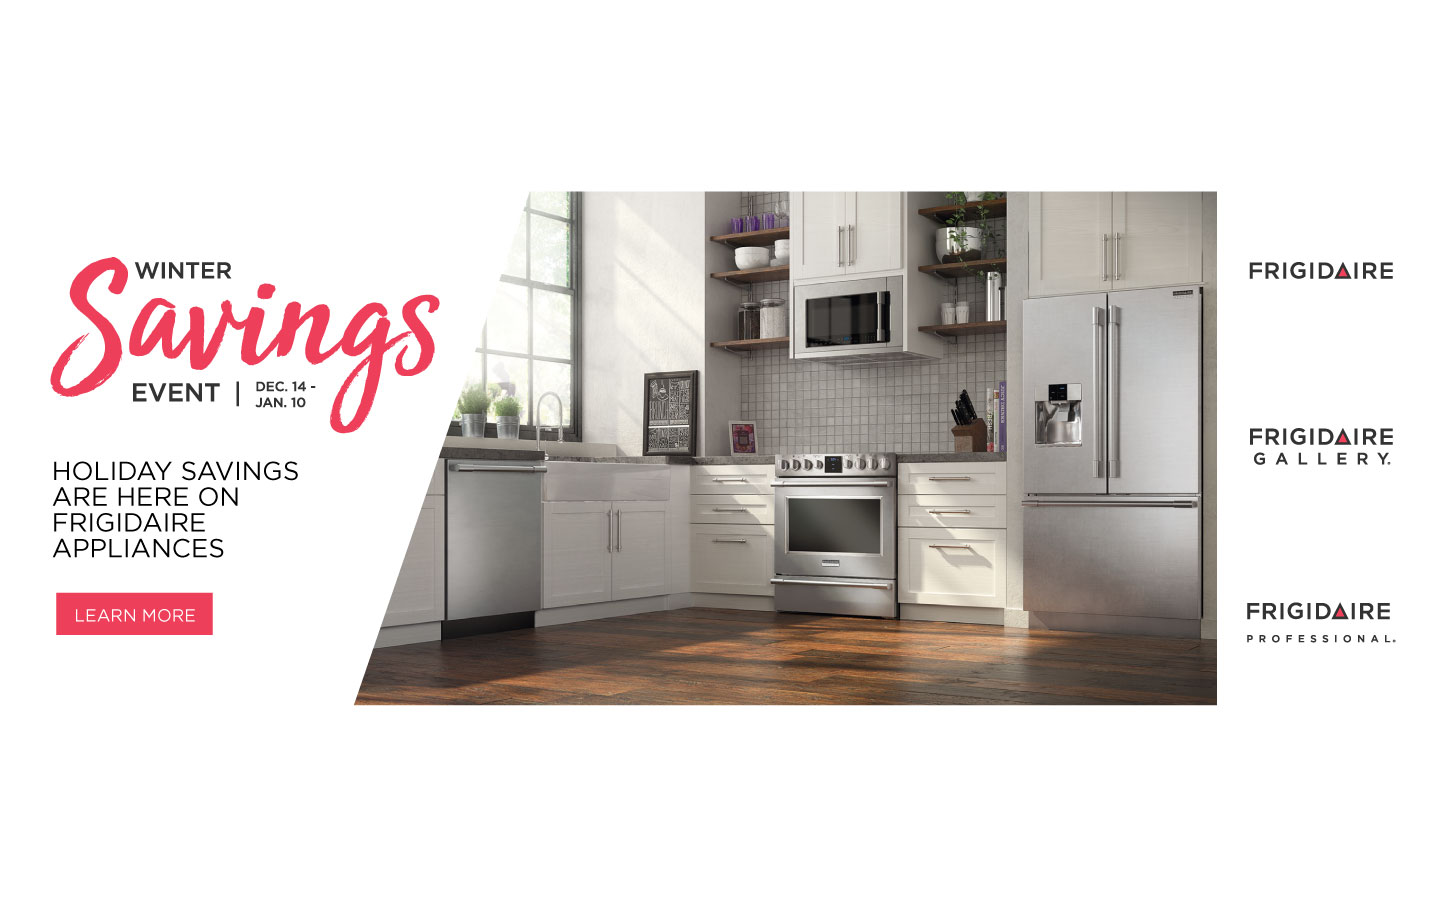 Frigidaire Holiday Savings 2017